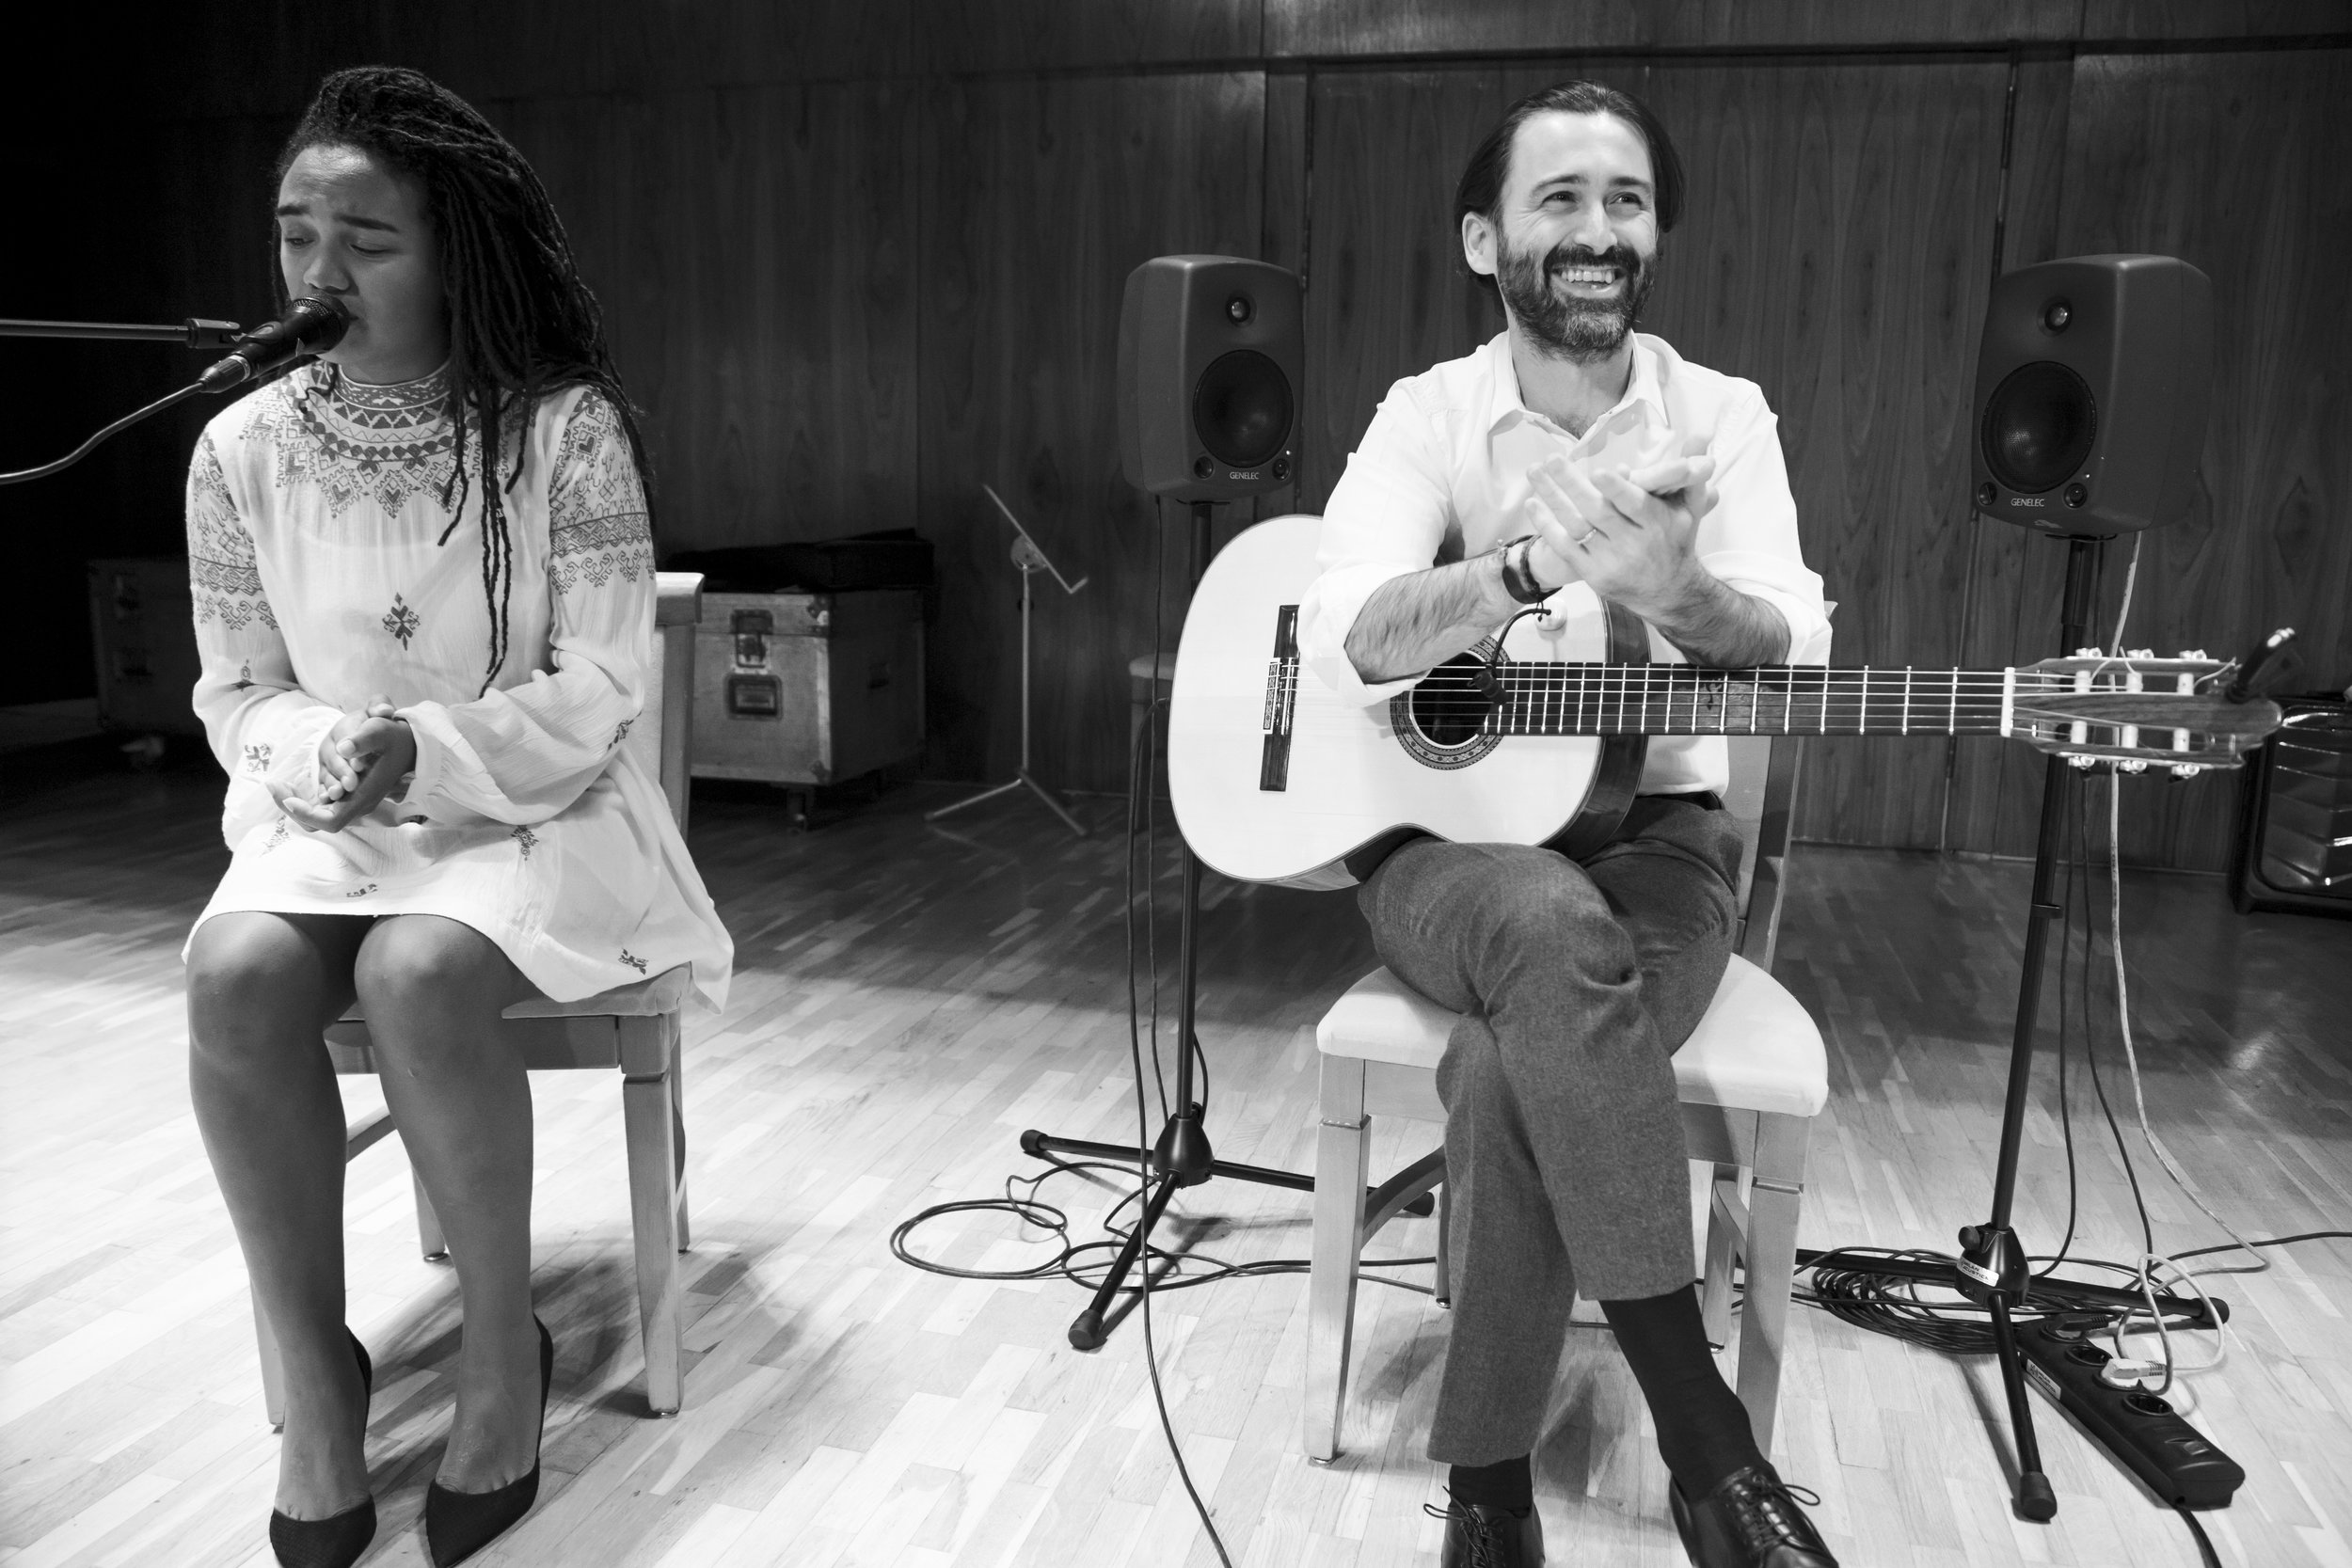 Javier Limon & Tonina performing at the National Auditorim of Music in Madrid, Spain in 2016. Photo by Eva Marques.